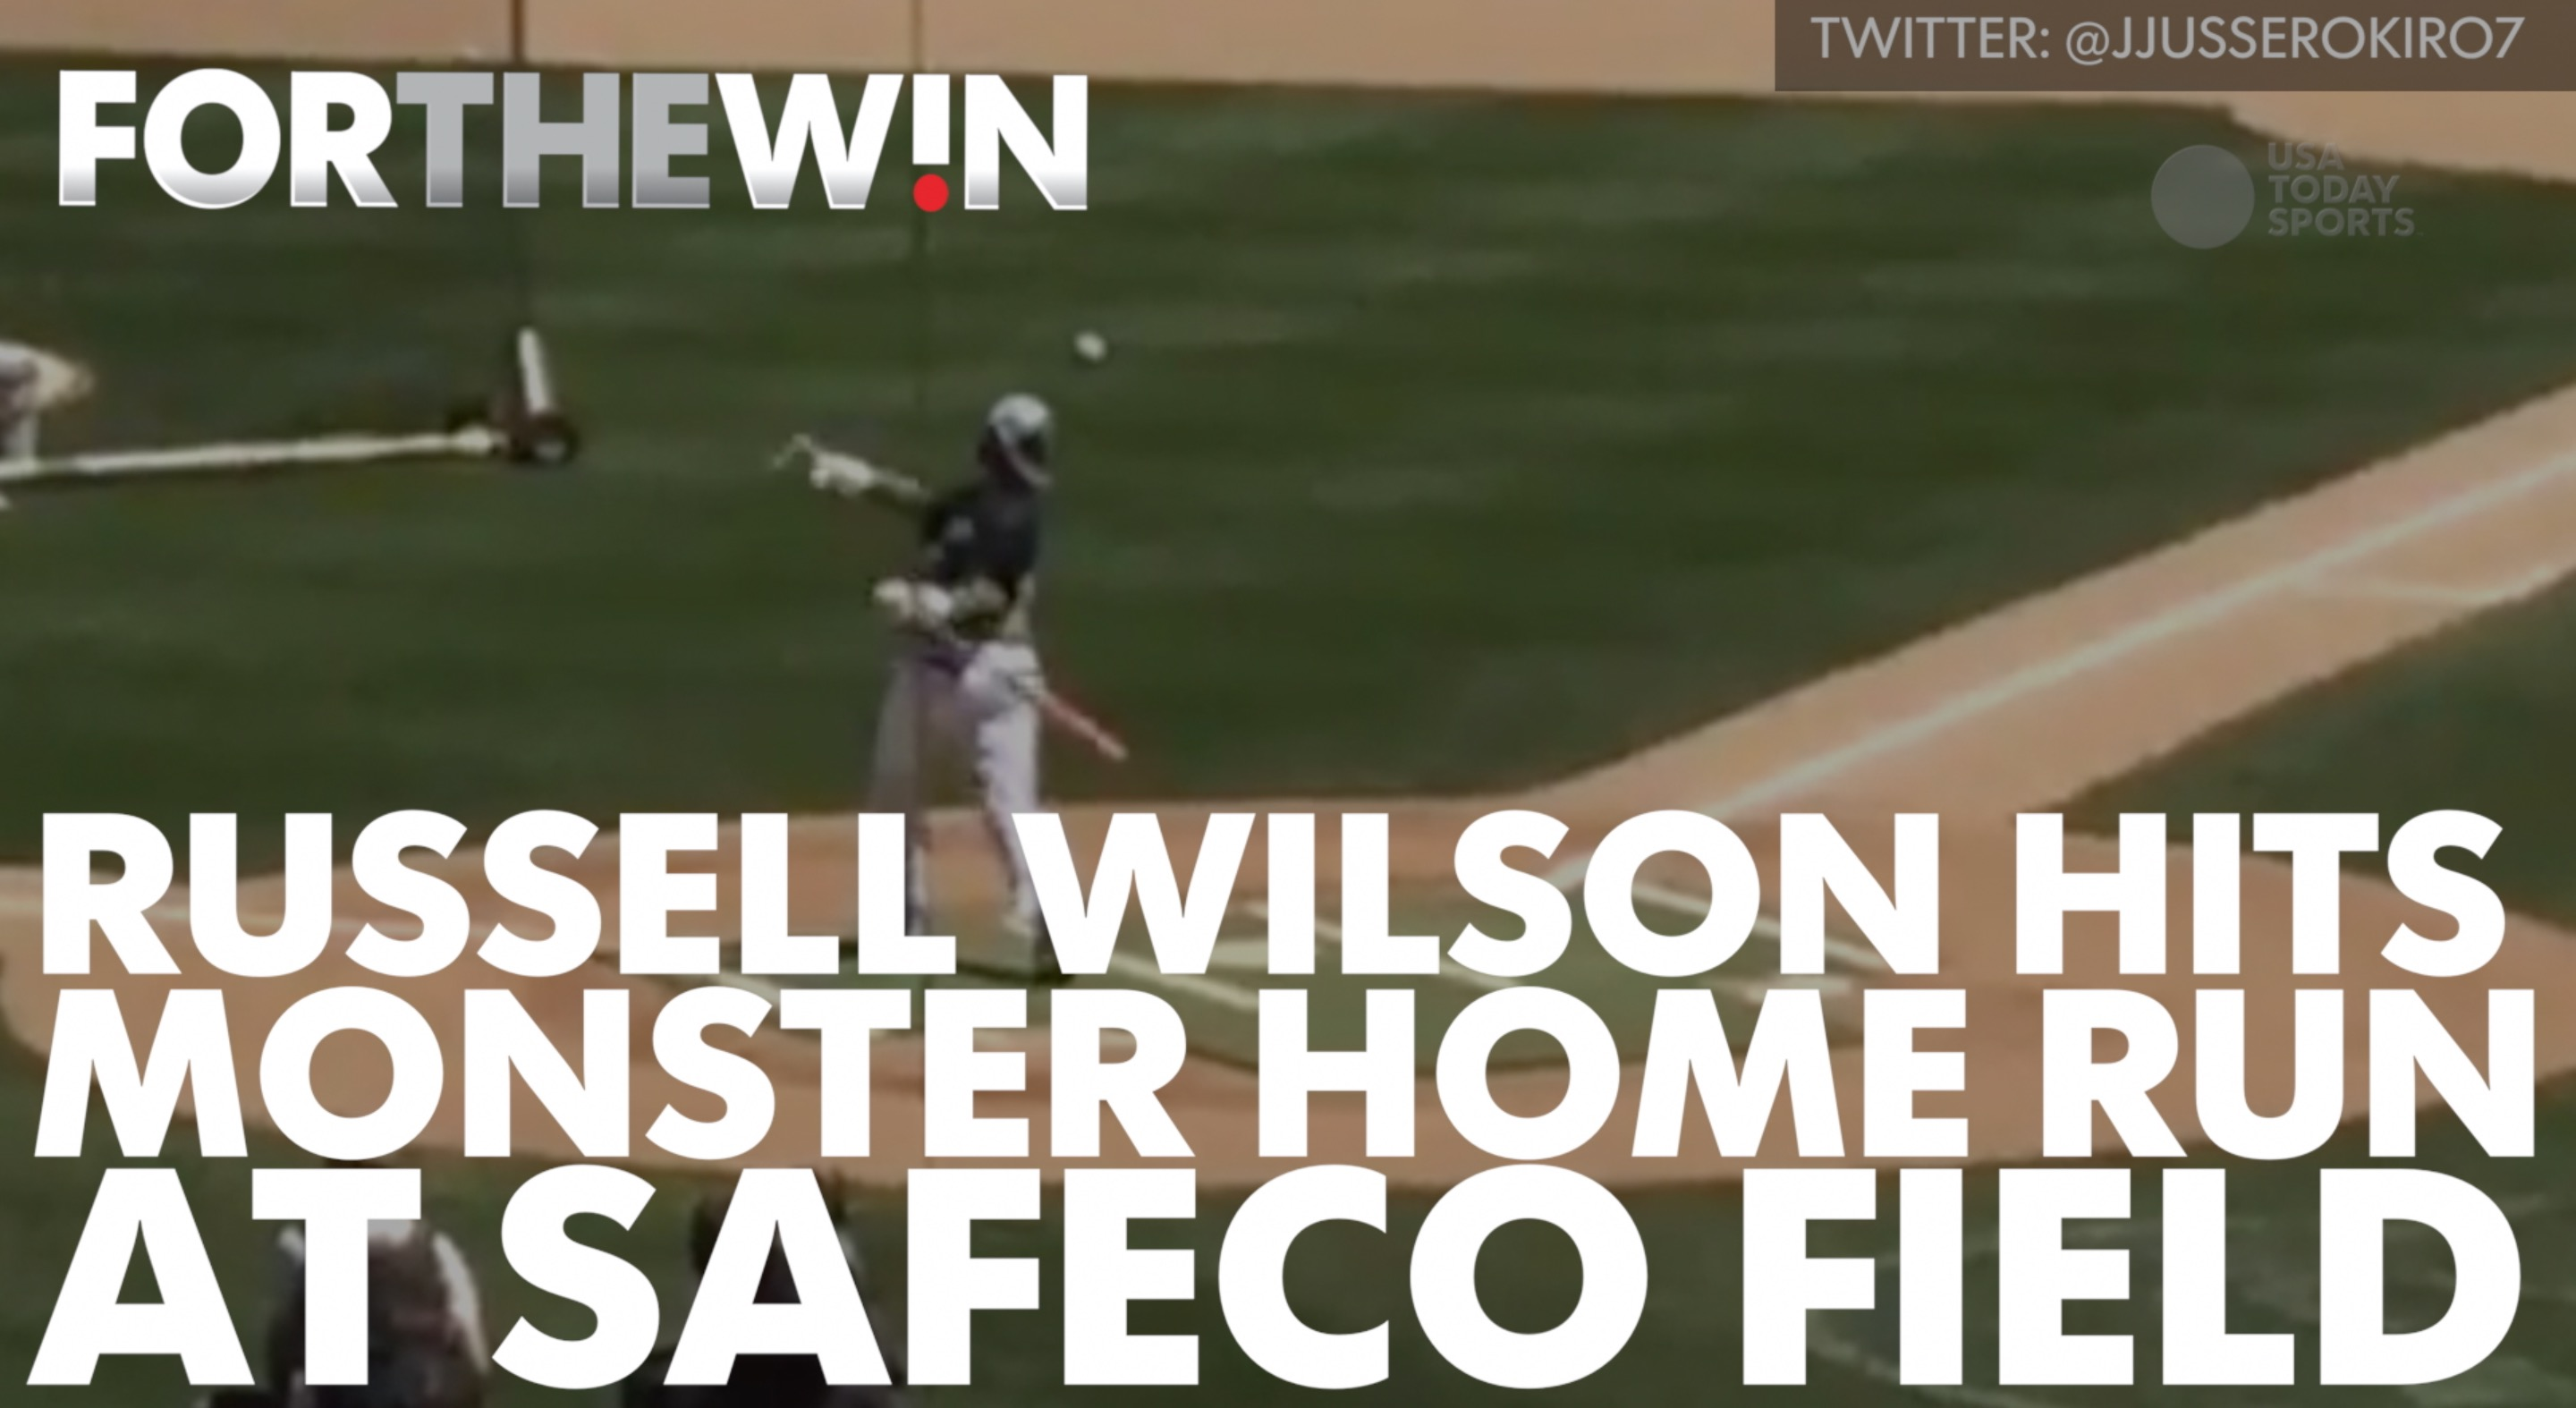 Russell Wilson hit a monster HR at charity game